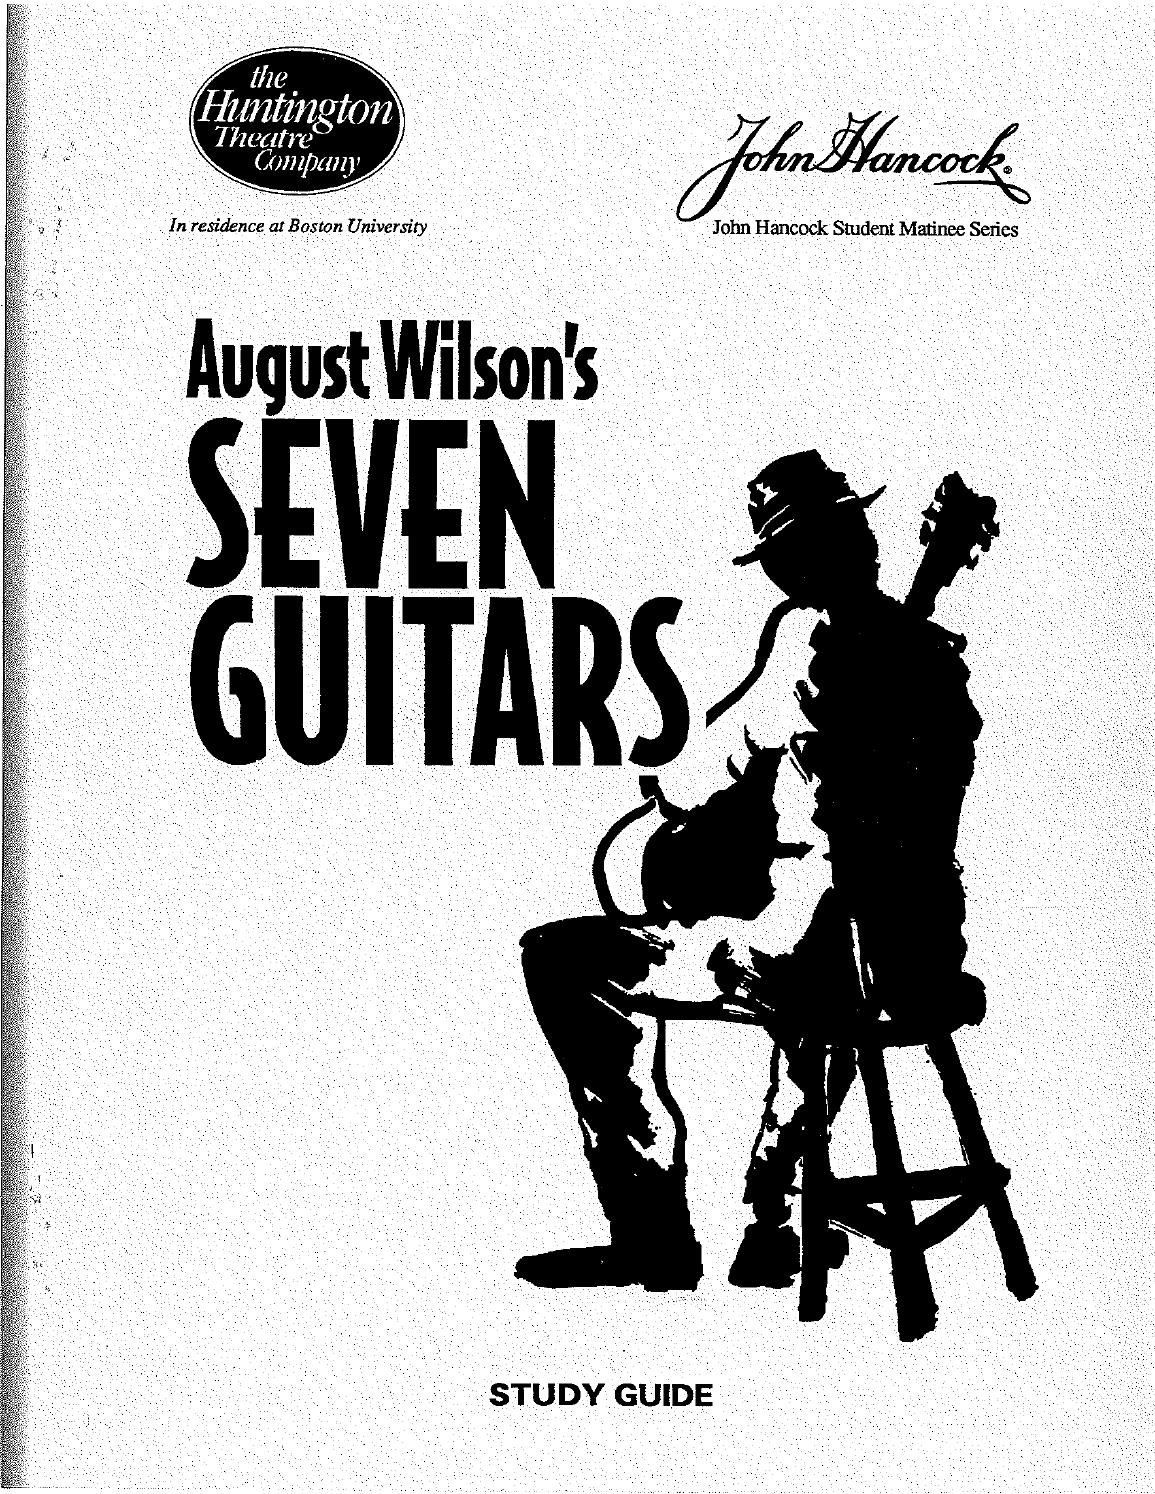 SEVEN GUITARS curriculum guide by Huntington Theatre